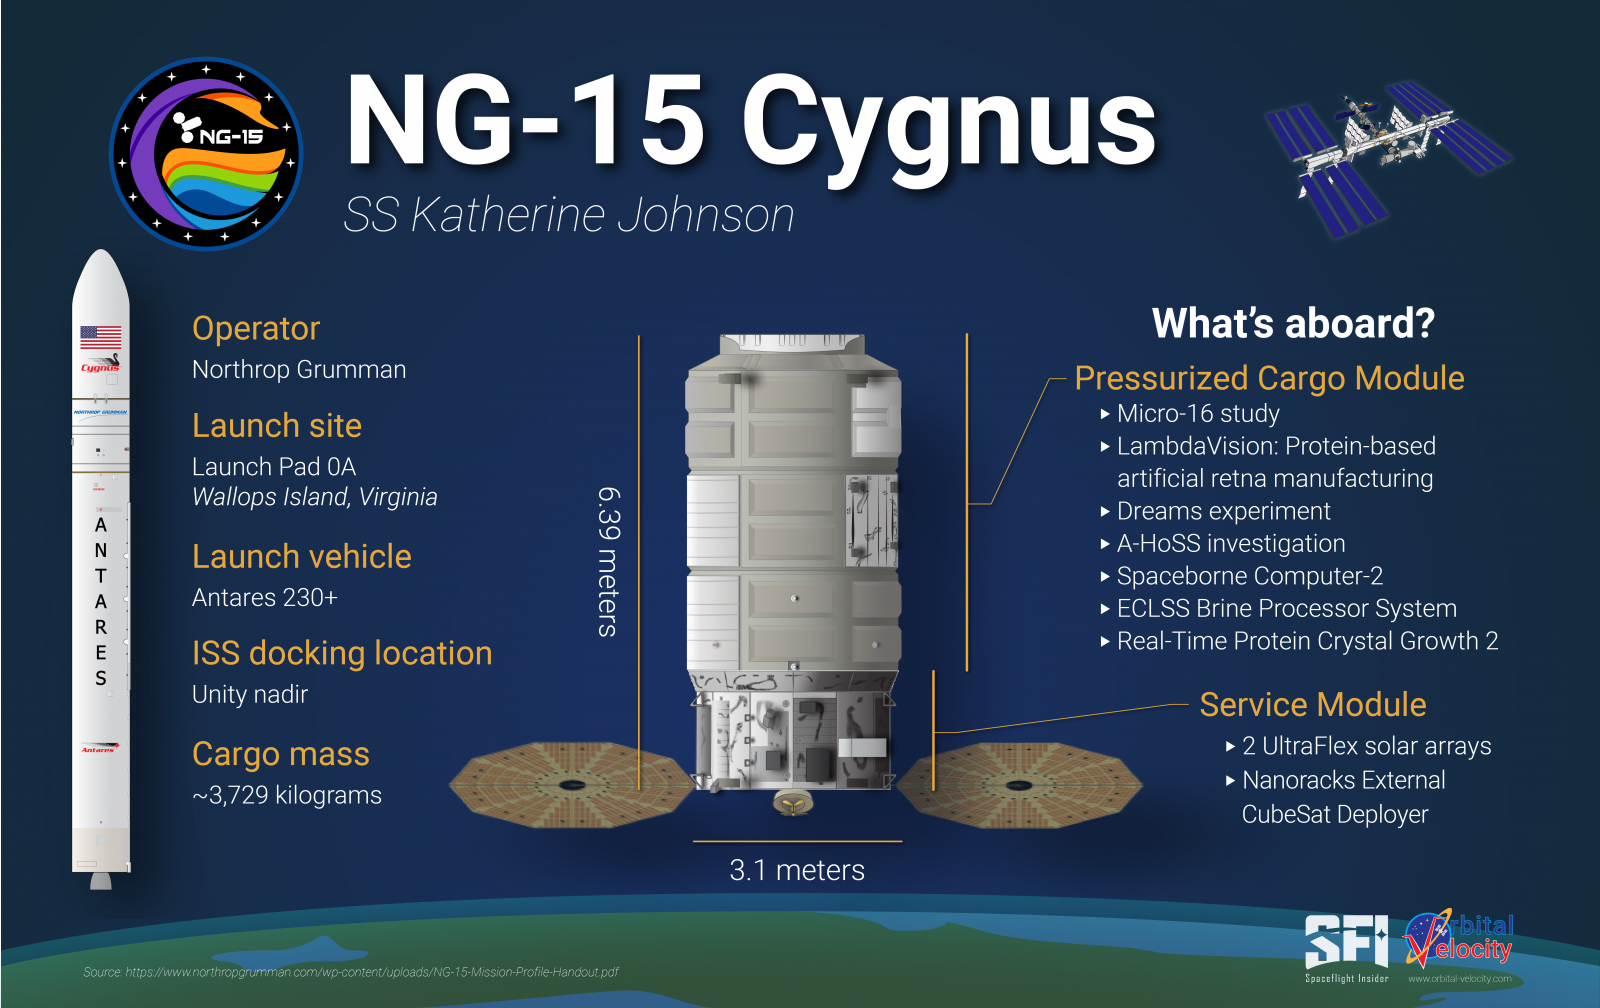 An overview of what is aboard the NG-15 Cygnus spacecraft. Credit: Derek Richardson / Spaceflight Insider / Orbital Velocity